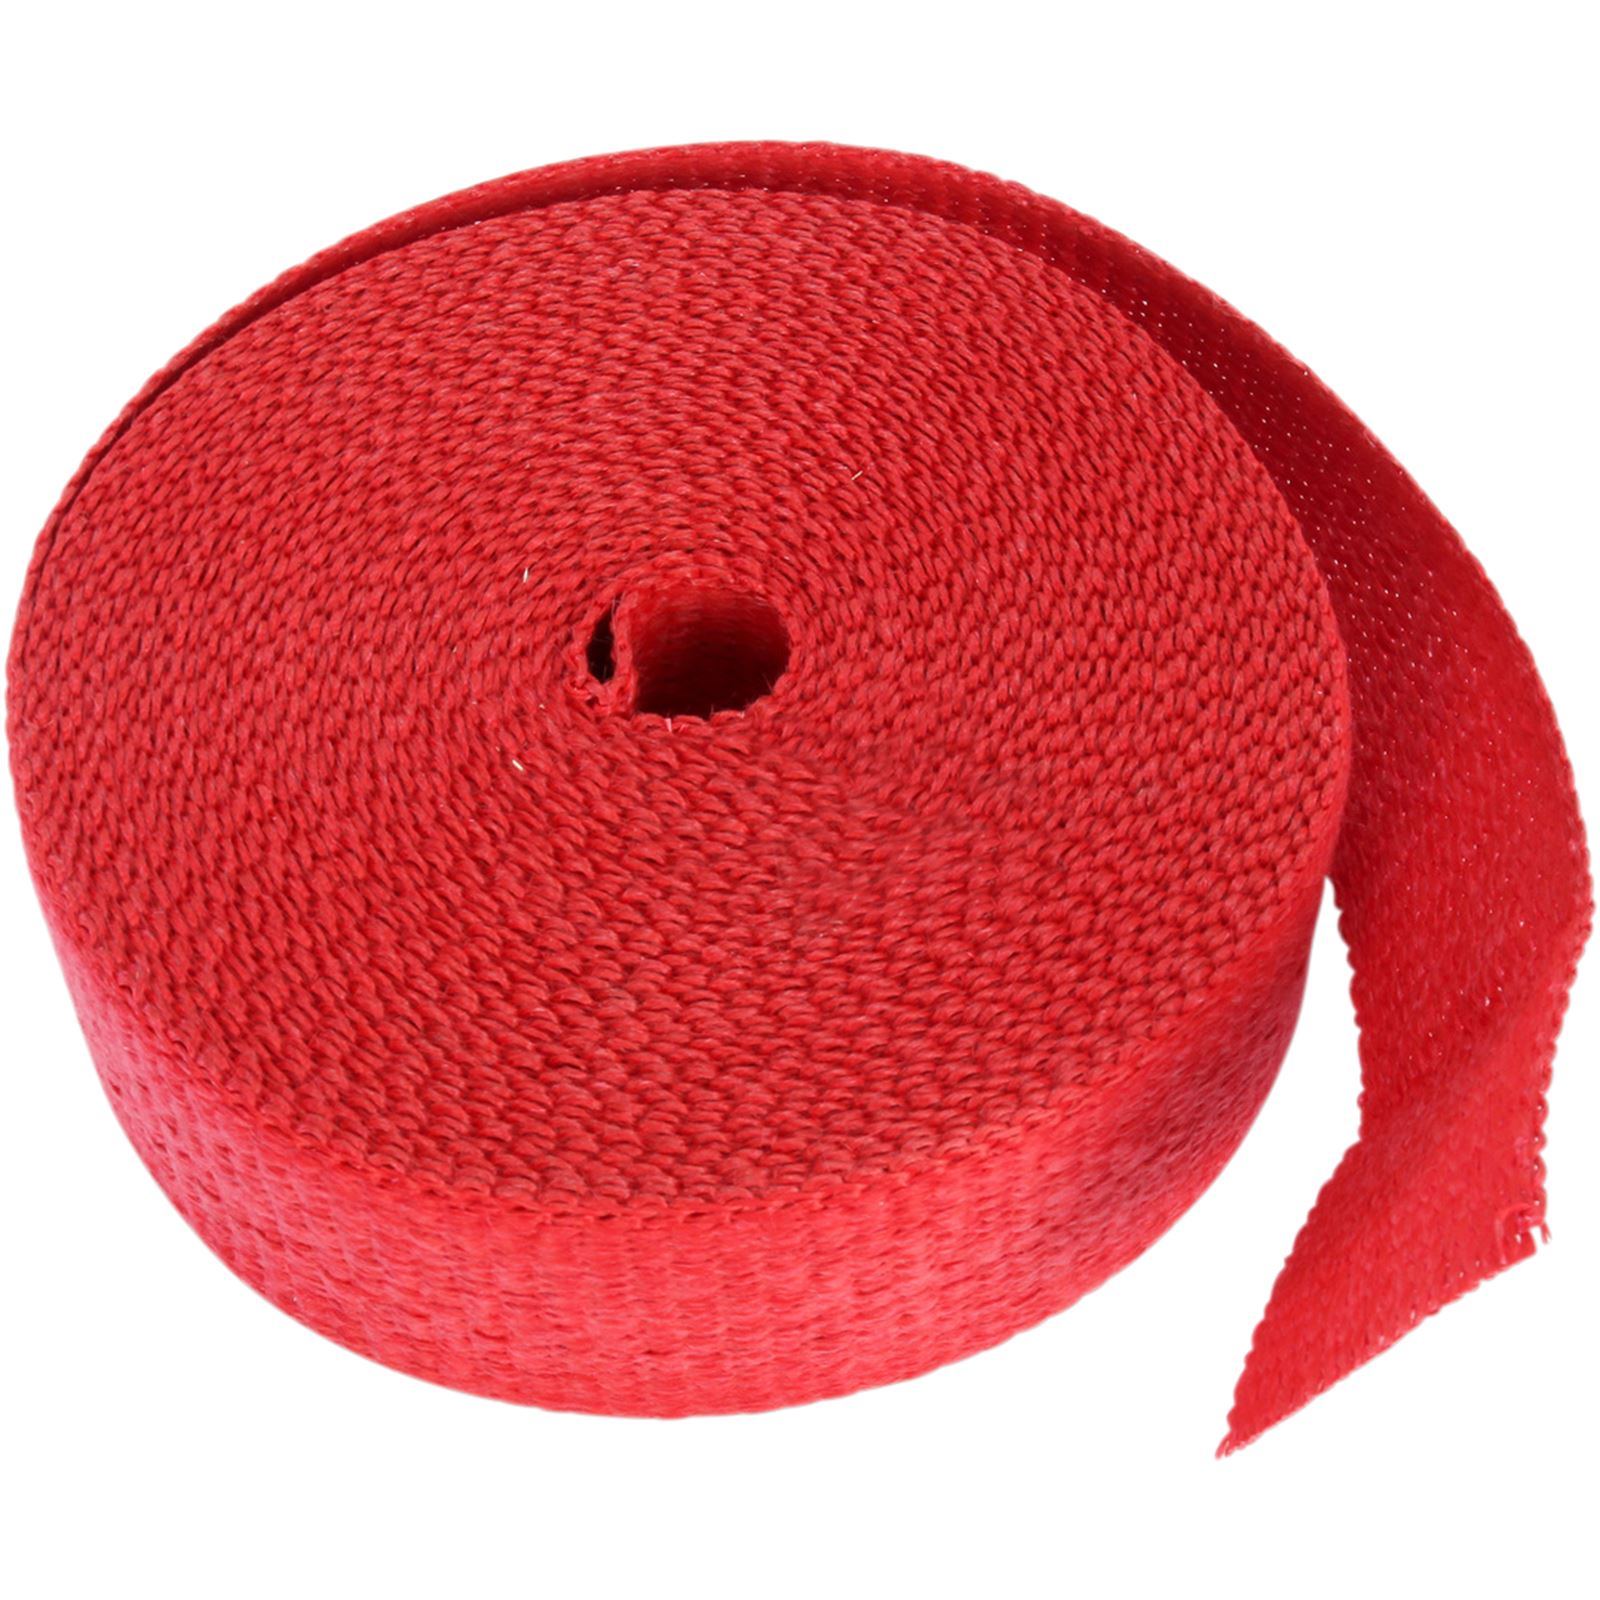 Cycle Performance Exhaust Wrap - Red - 2x50